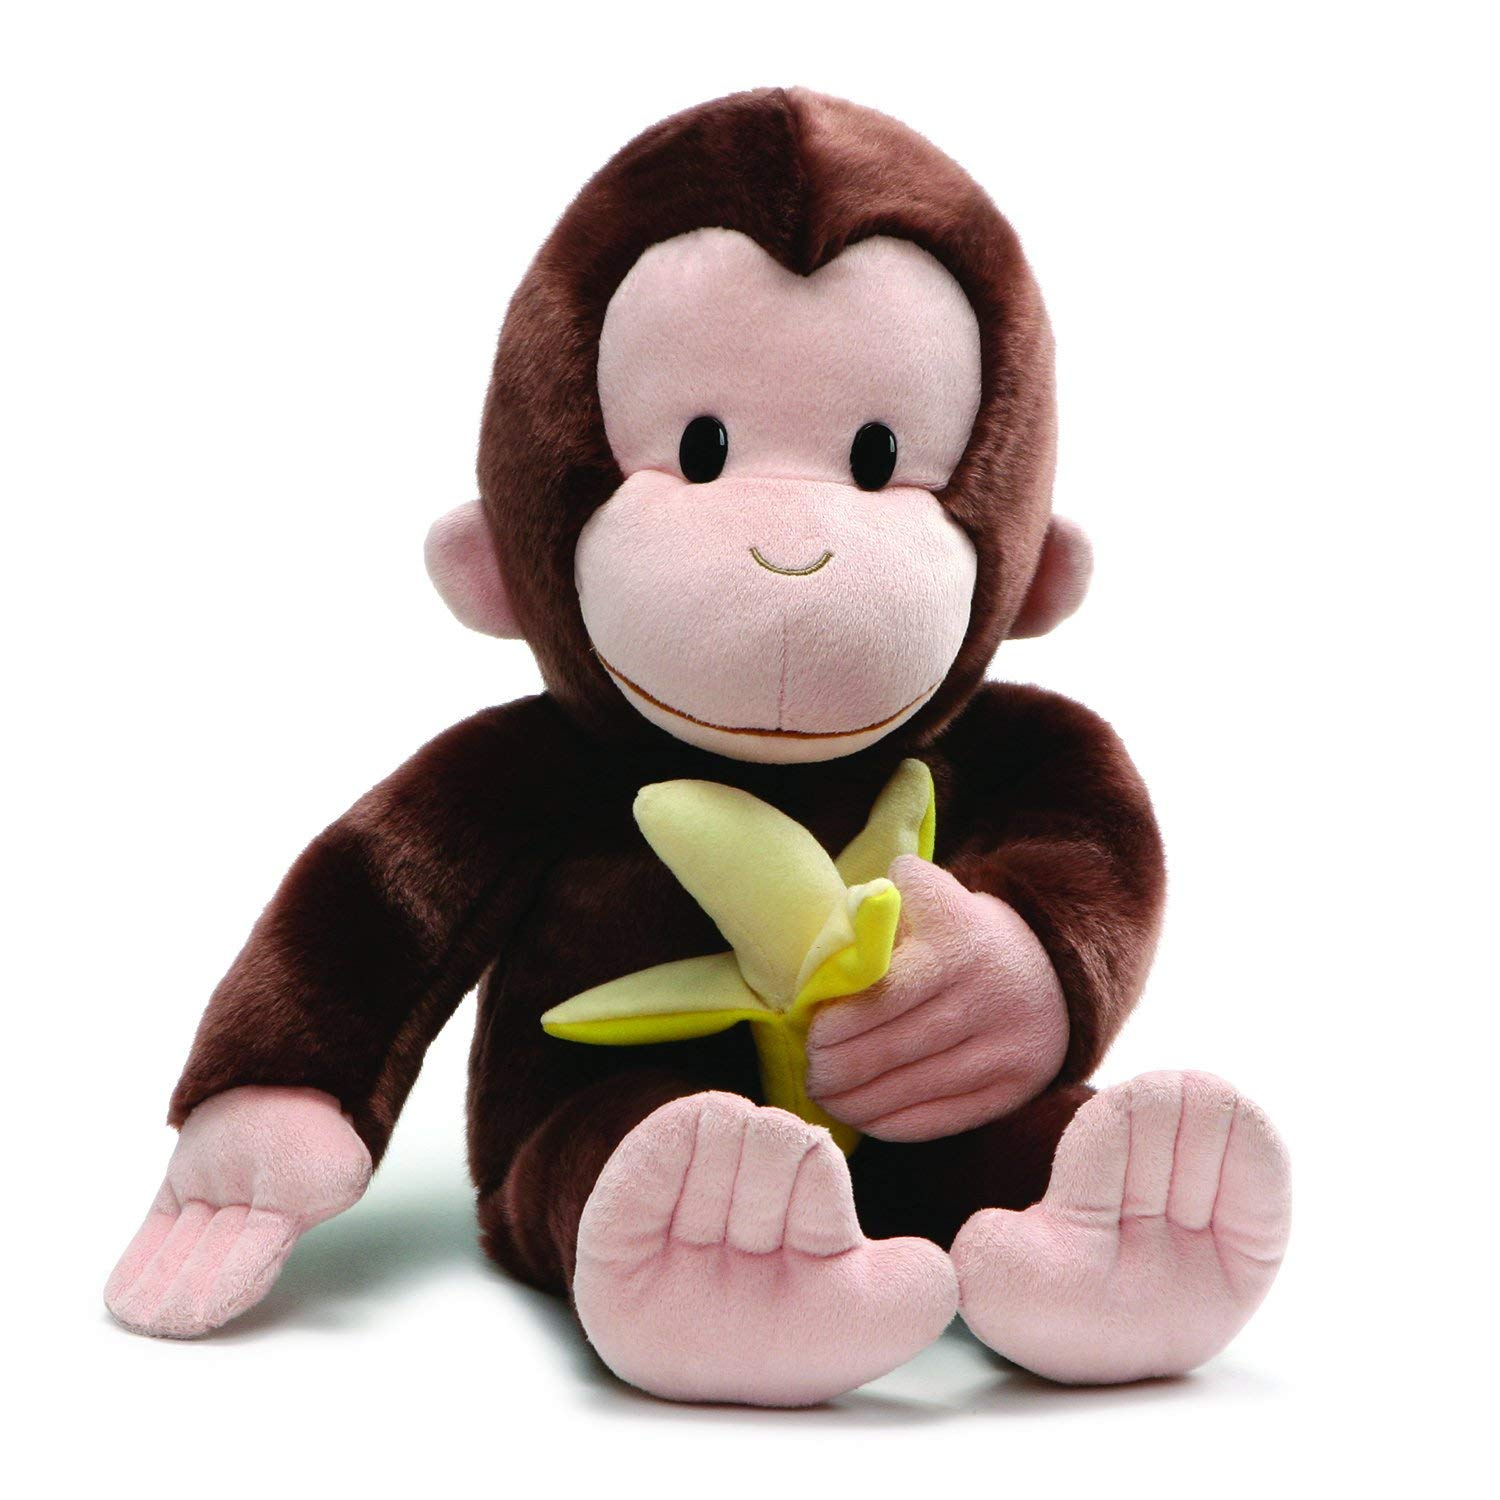 GUND Curious George with Banana Plush Stuffed Animal, 20� #4061282 by Gund